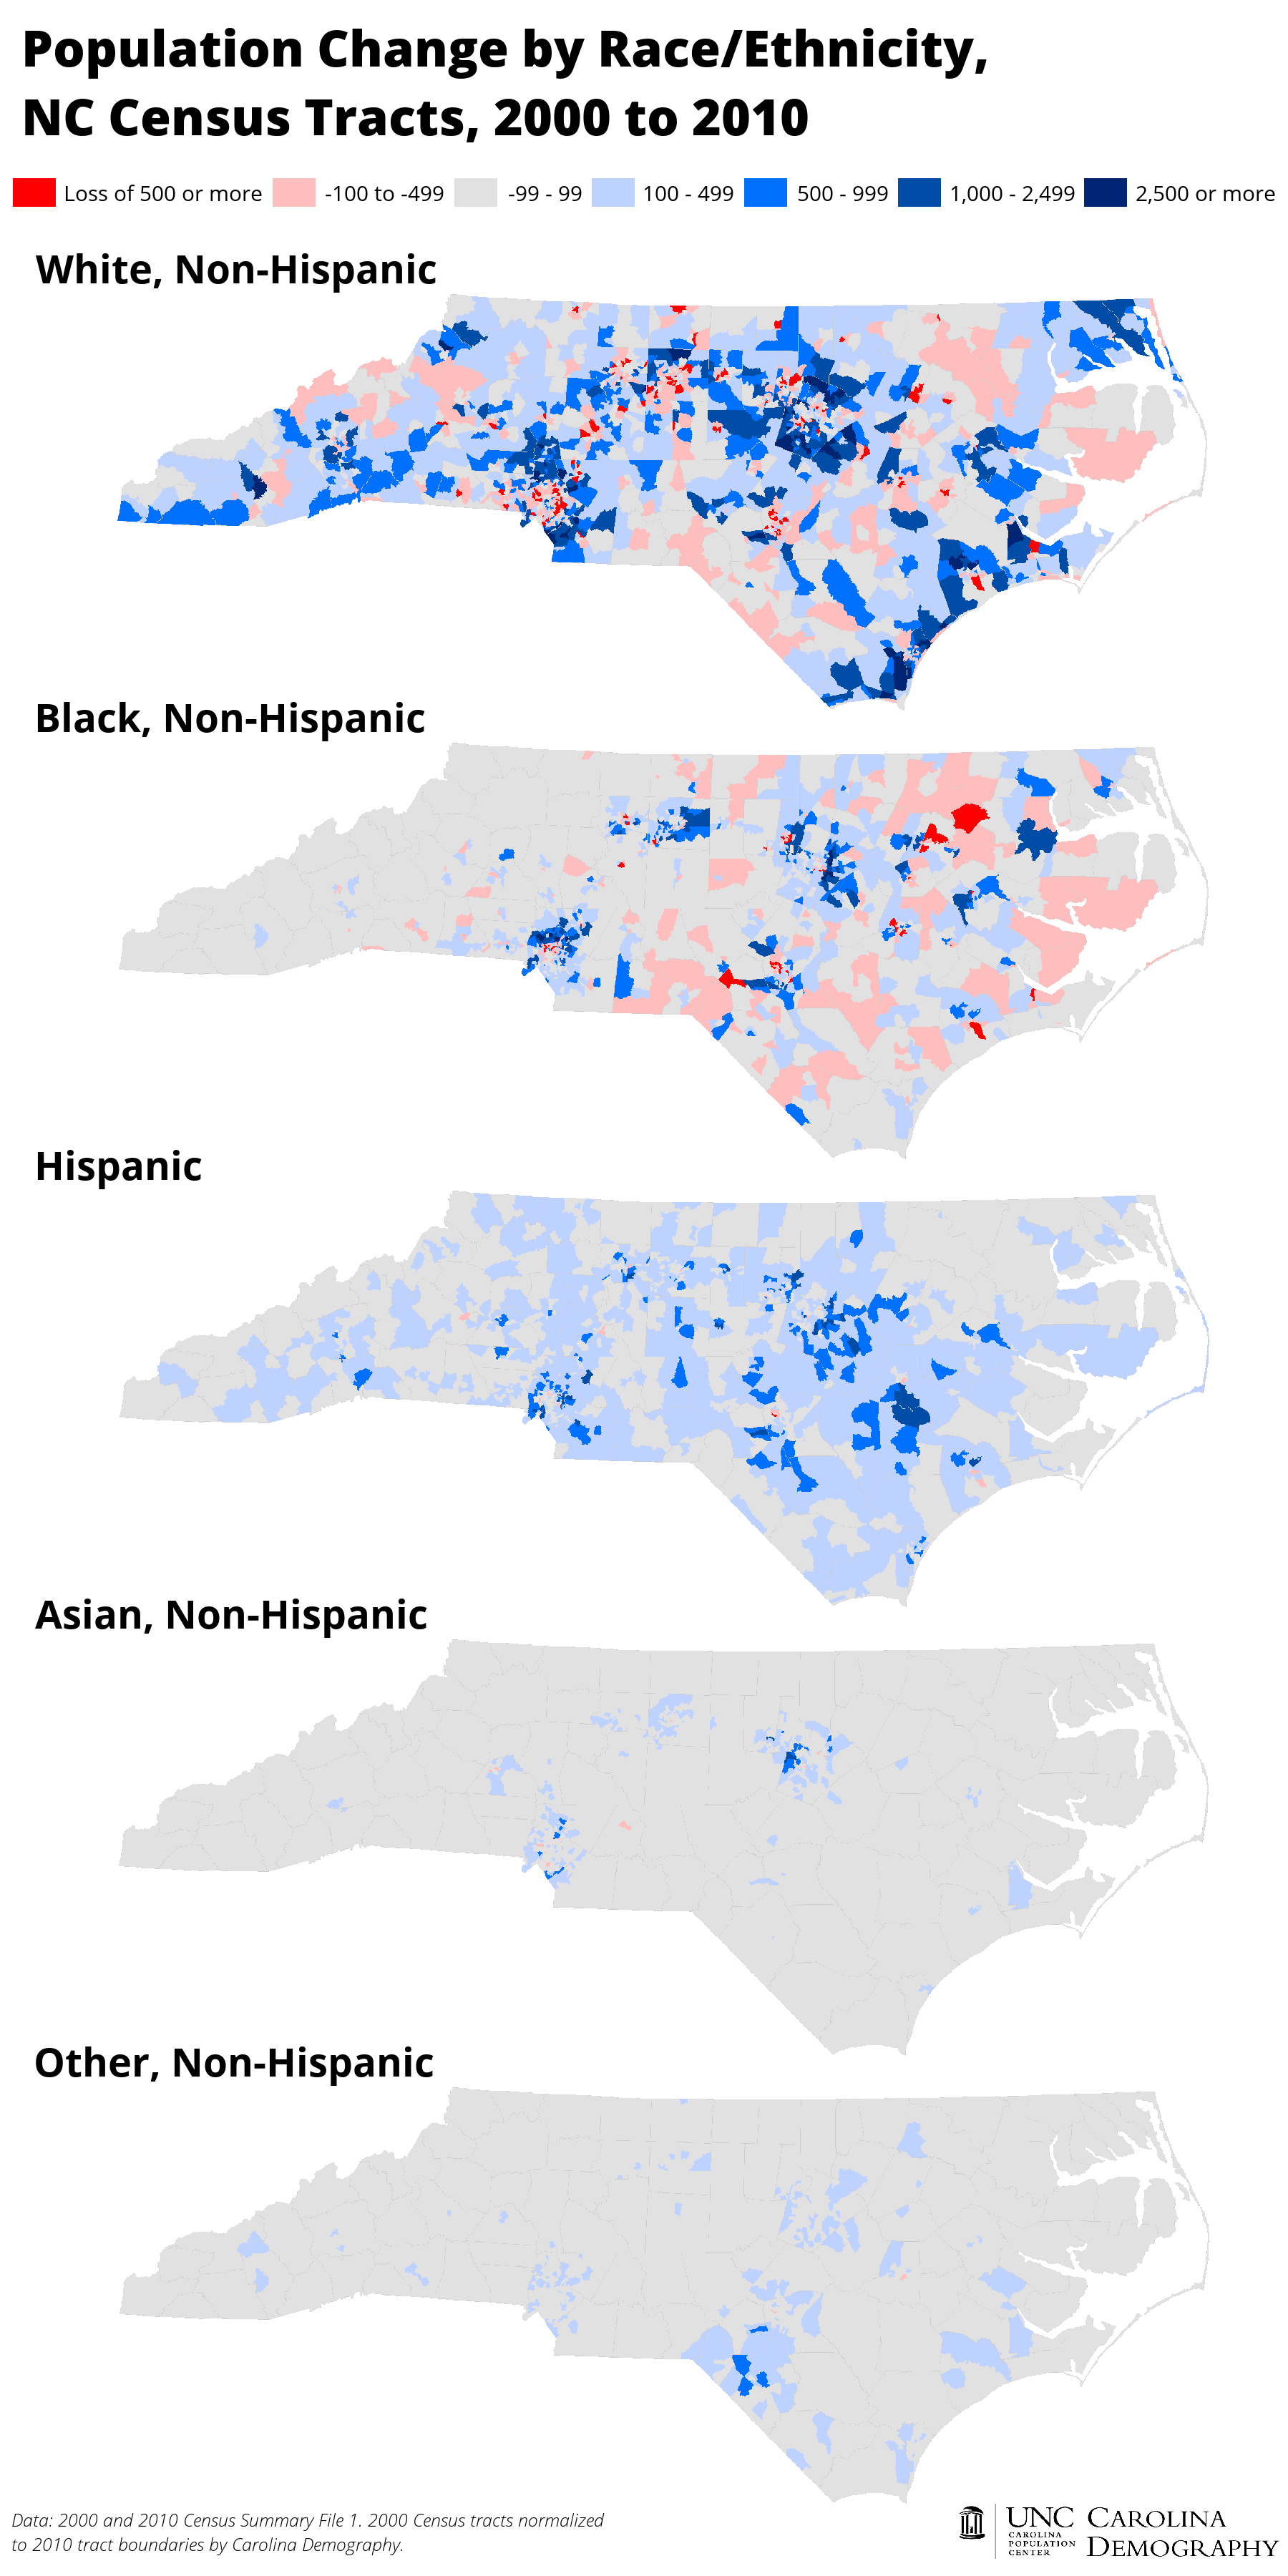 Racial and Ethnic Change 2000 to 2010